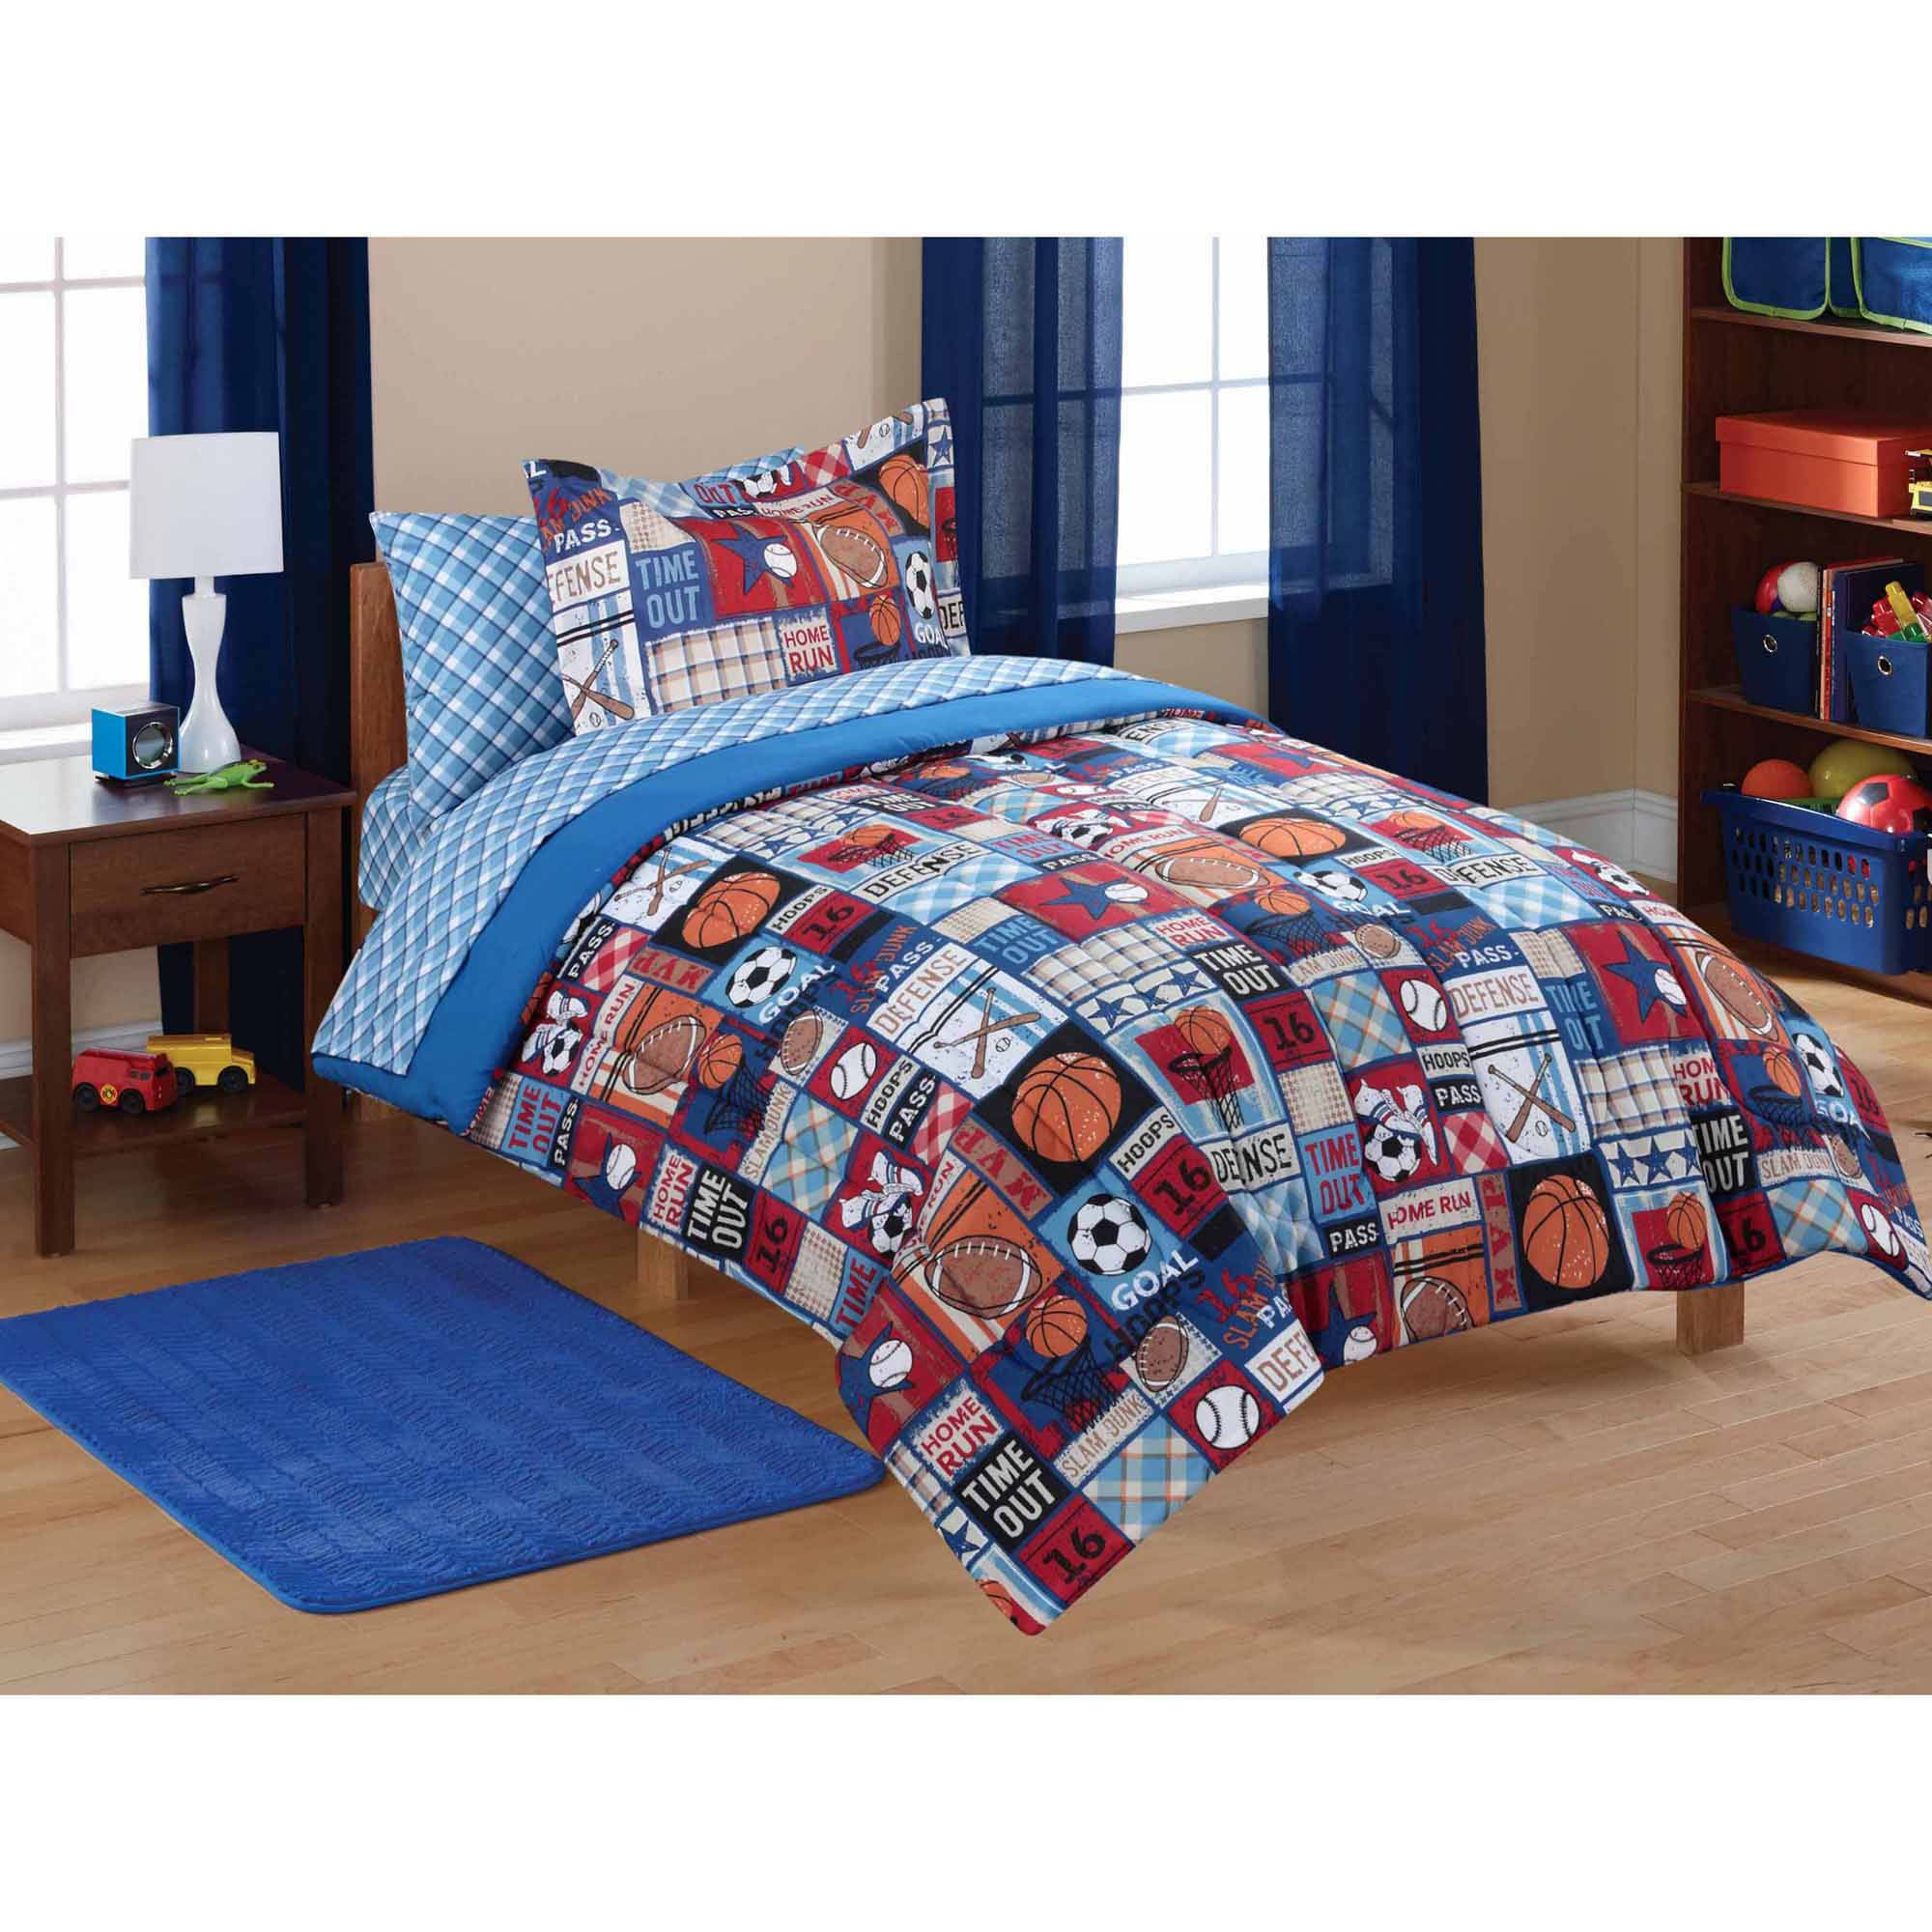 Boys sports bedding sets full - Mainstays Kids Sports Patch Coordinated Bed In A Bag Deal